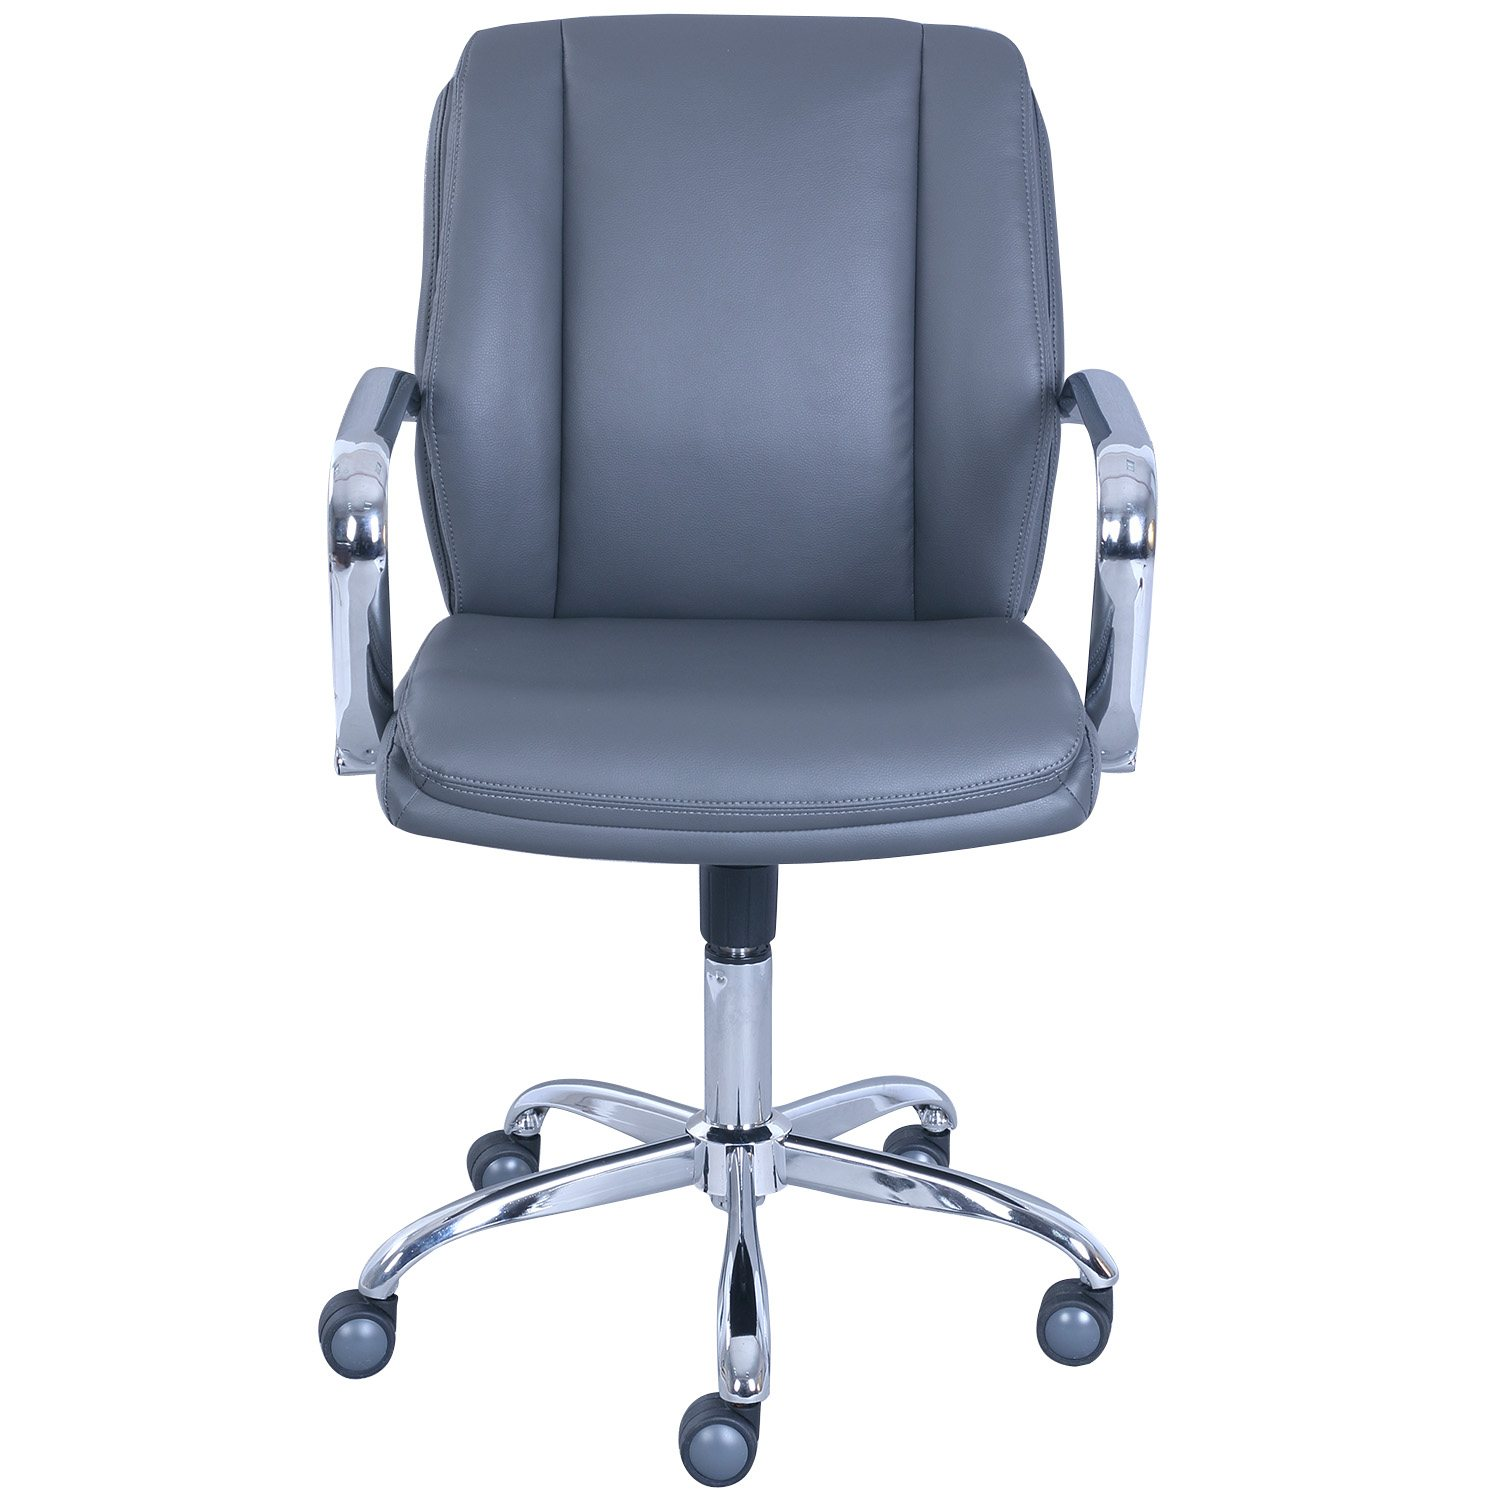 fort by Design Task Chair Select Color Supports up to 250 lbs